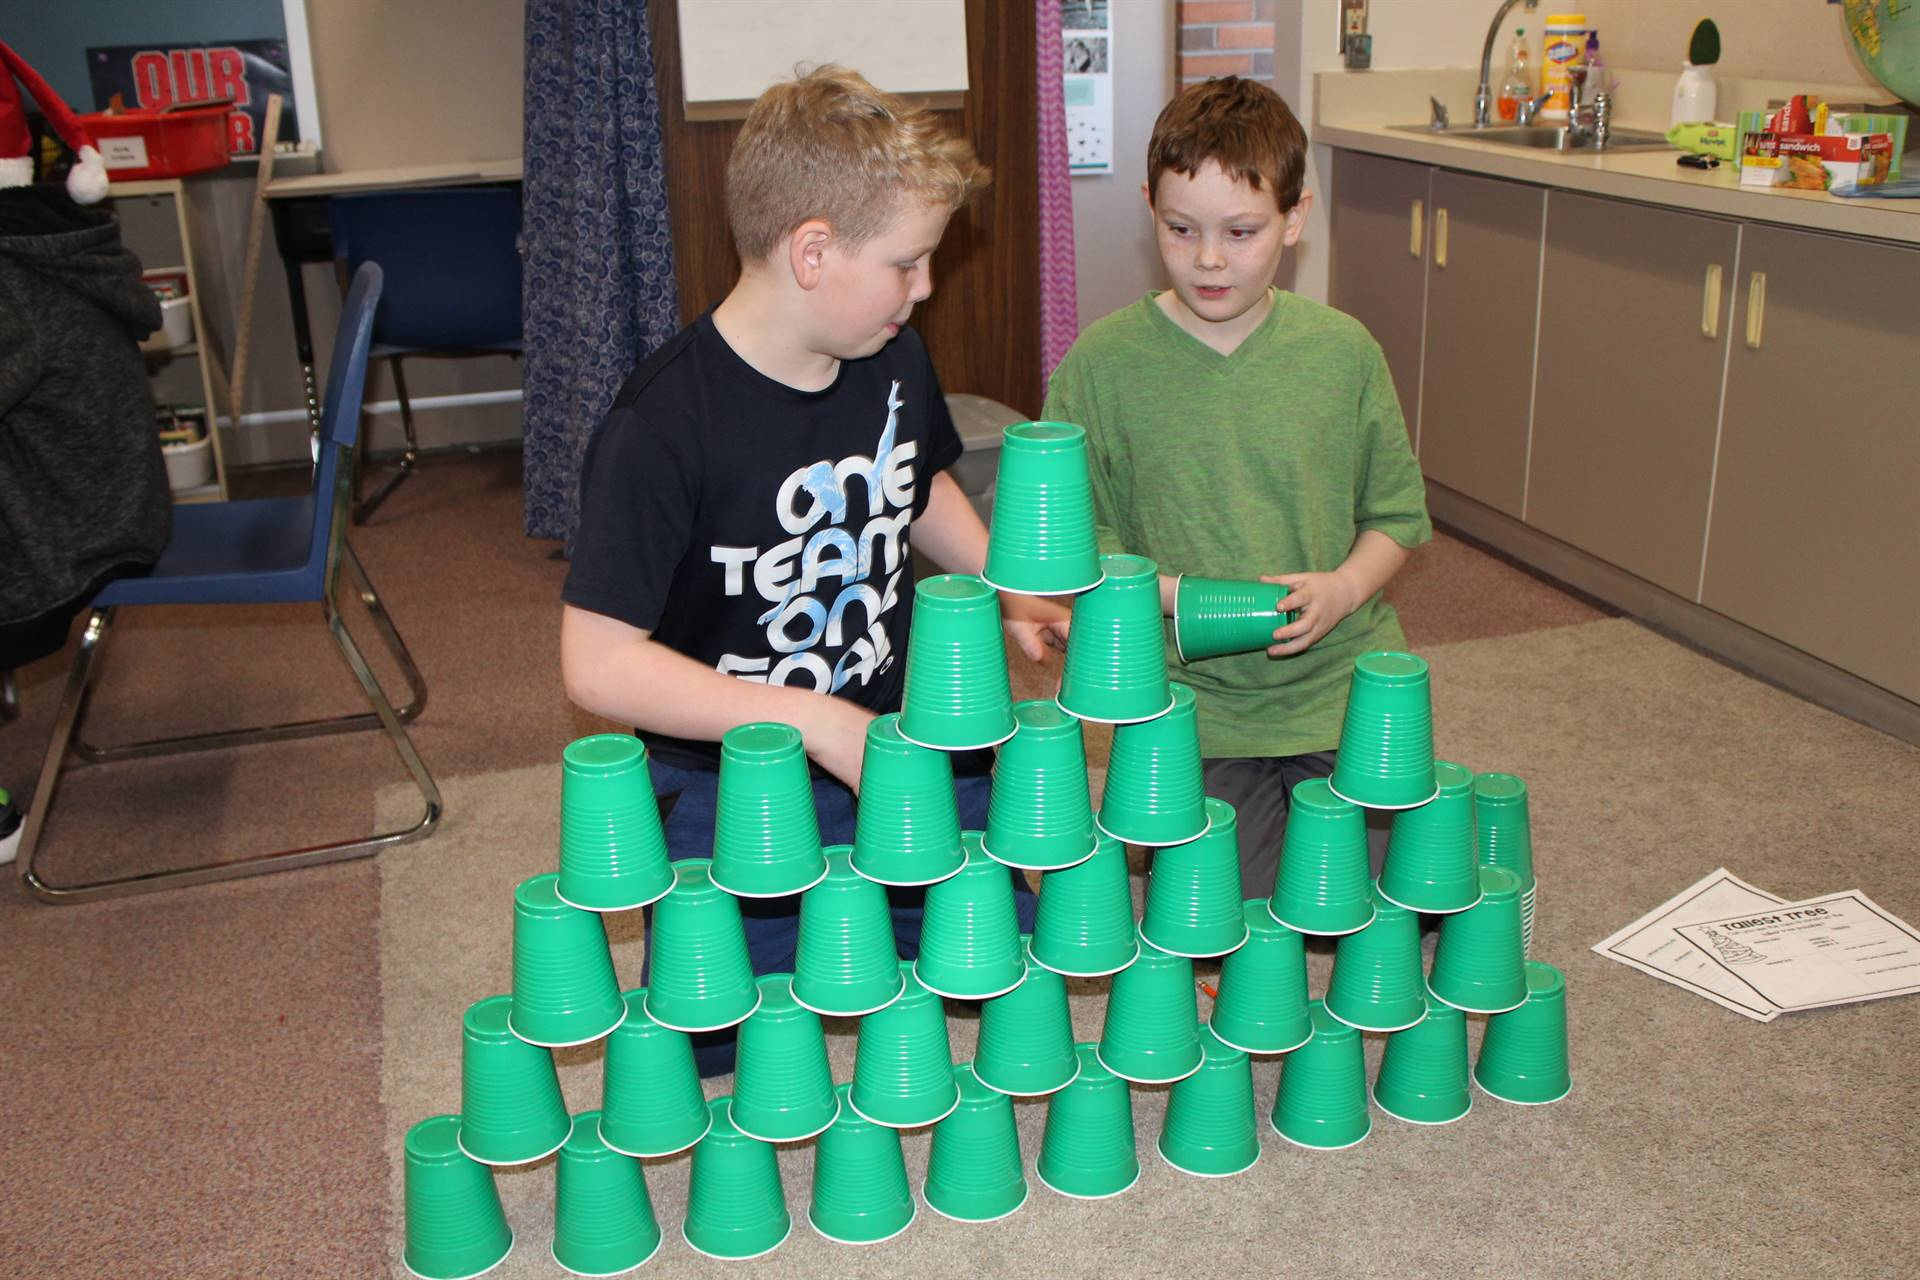 Students making a Christmas tree out of plastic cups